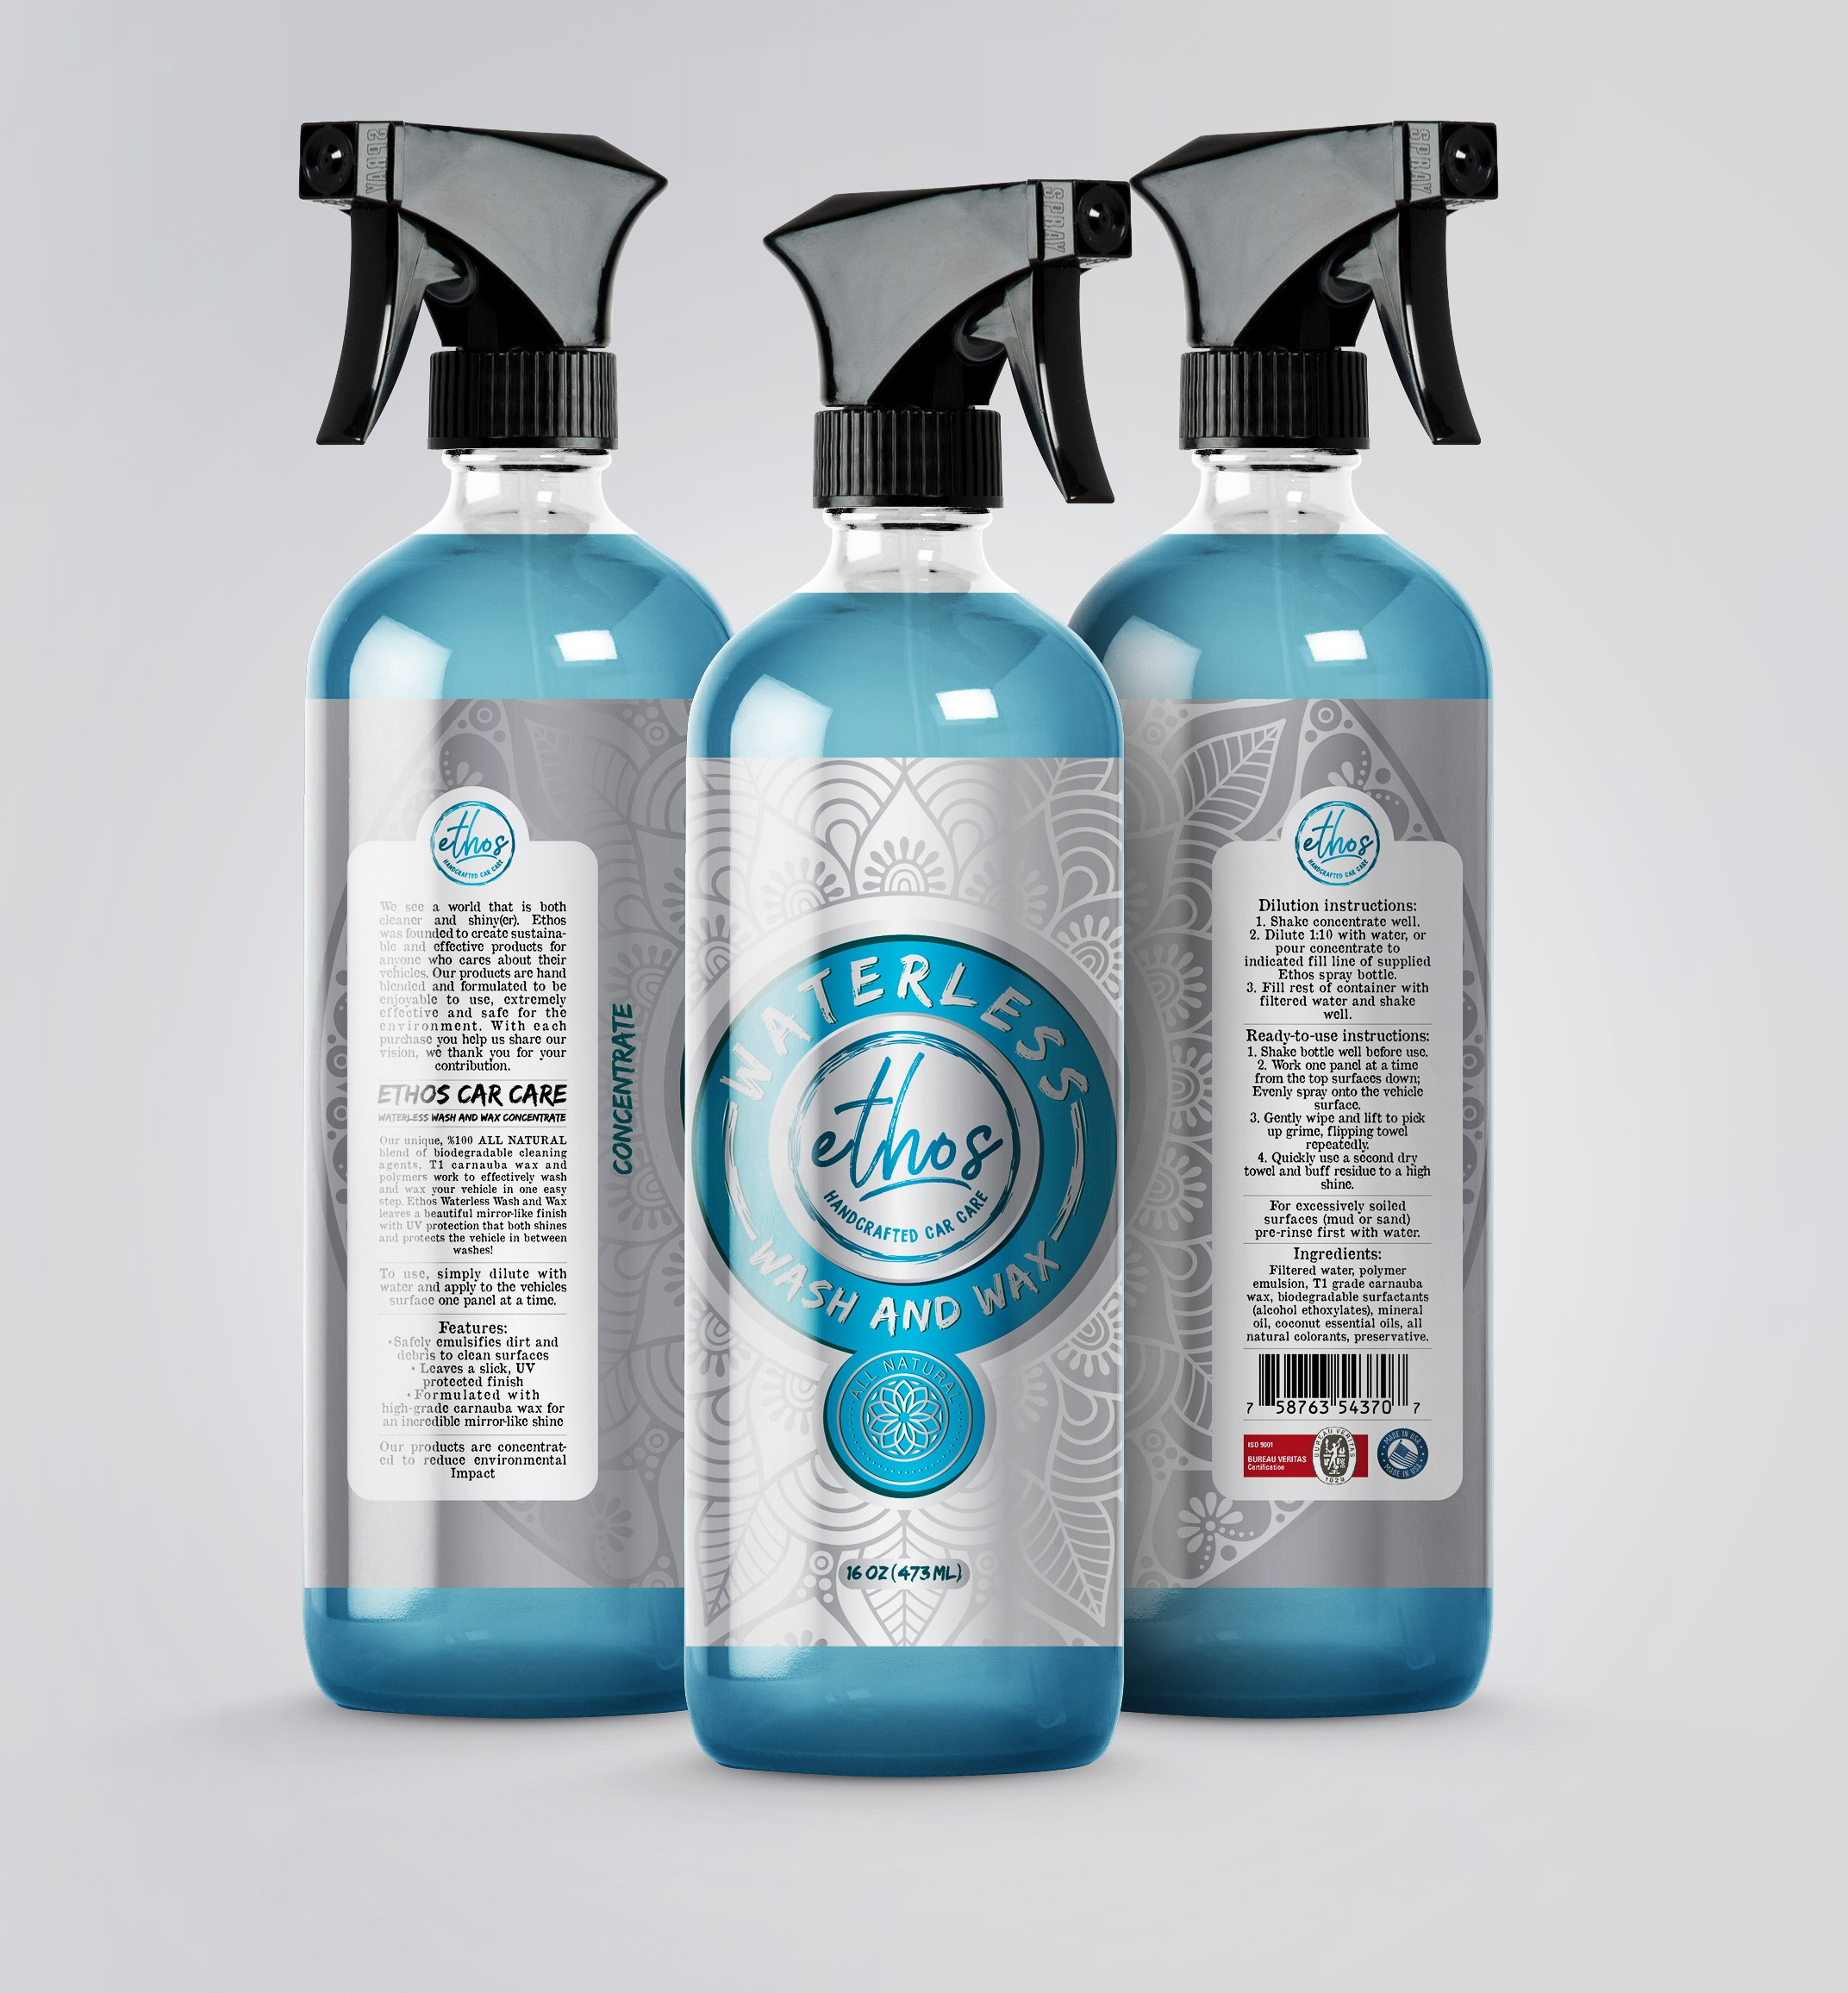 Elements Car Care Product Branding Label (Waterless Car Wash)